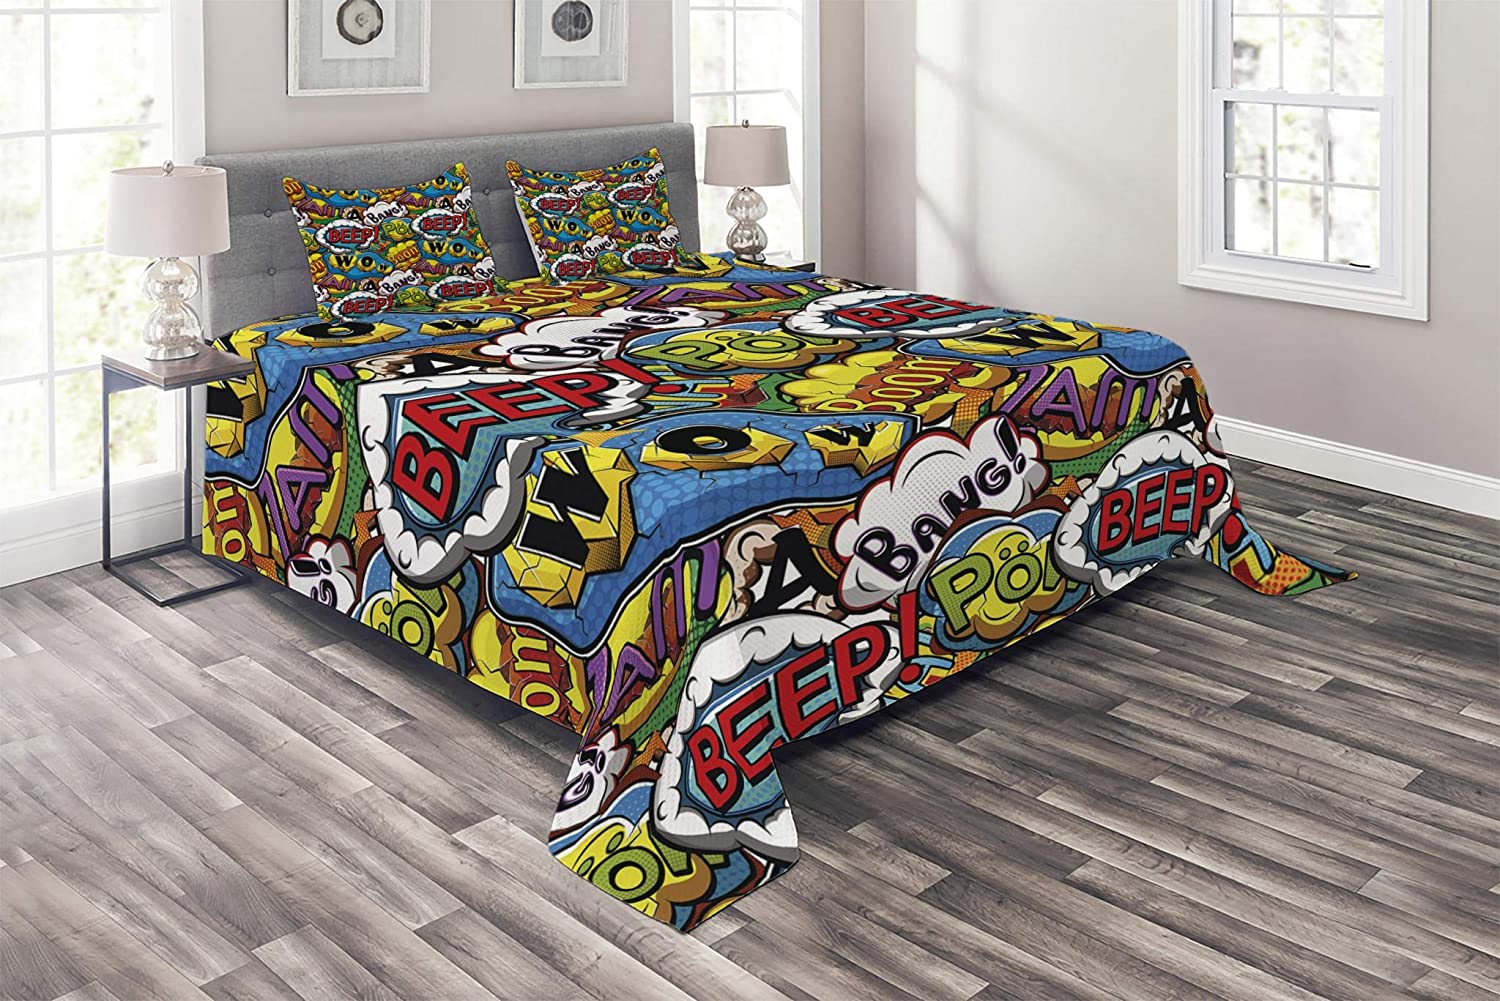 Lunarable Superhero Coverlet Set Queen Size, Comics Speech Bubbles Beep Wow with Vivid Old Effects Boys Supernatural Print, 3 Piece Decorative Quilted Bedspread Set with 2 Pillow Shams, Multicolor